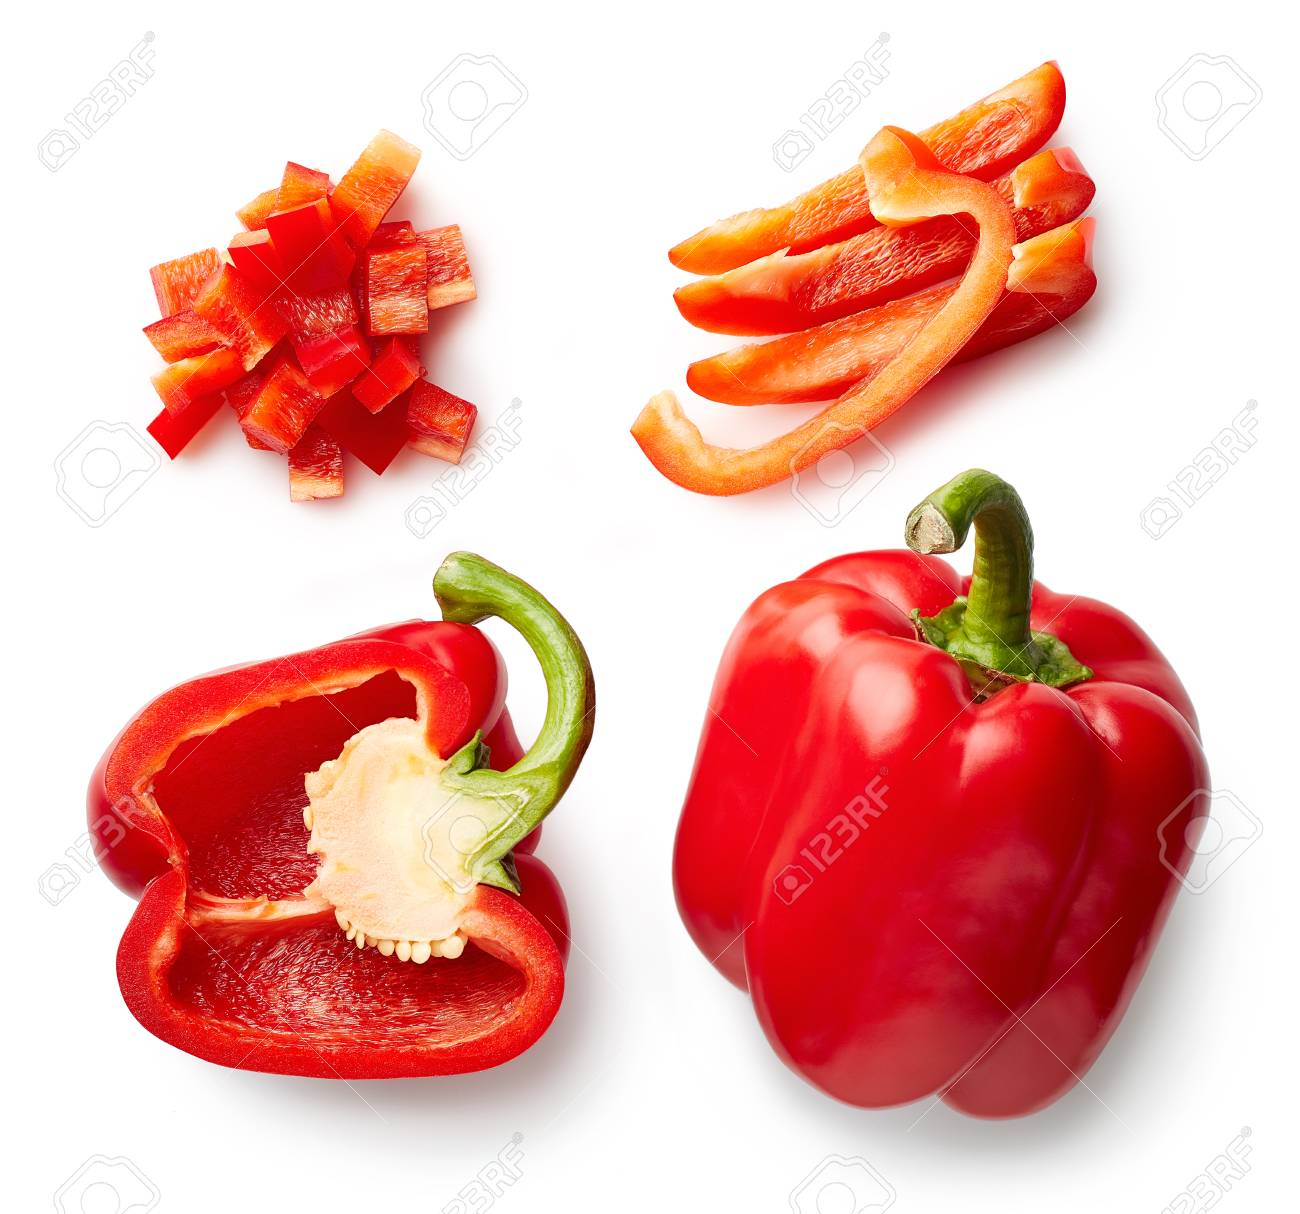 Sweet red pepper isolated on white background. Top view. Half and slices - 94279375